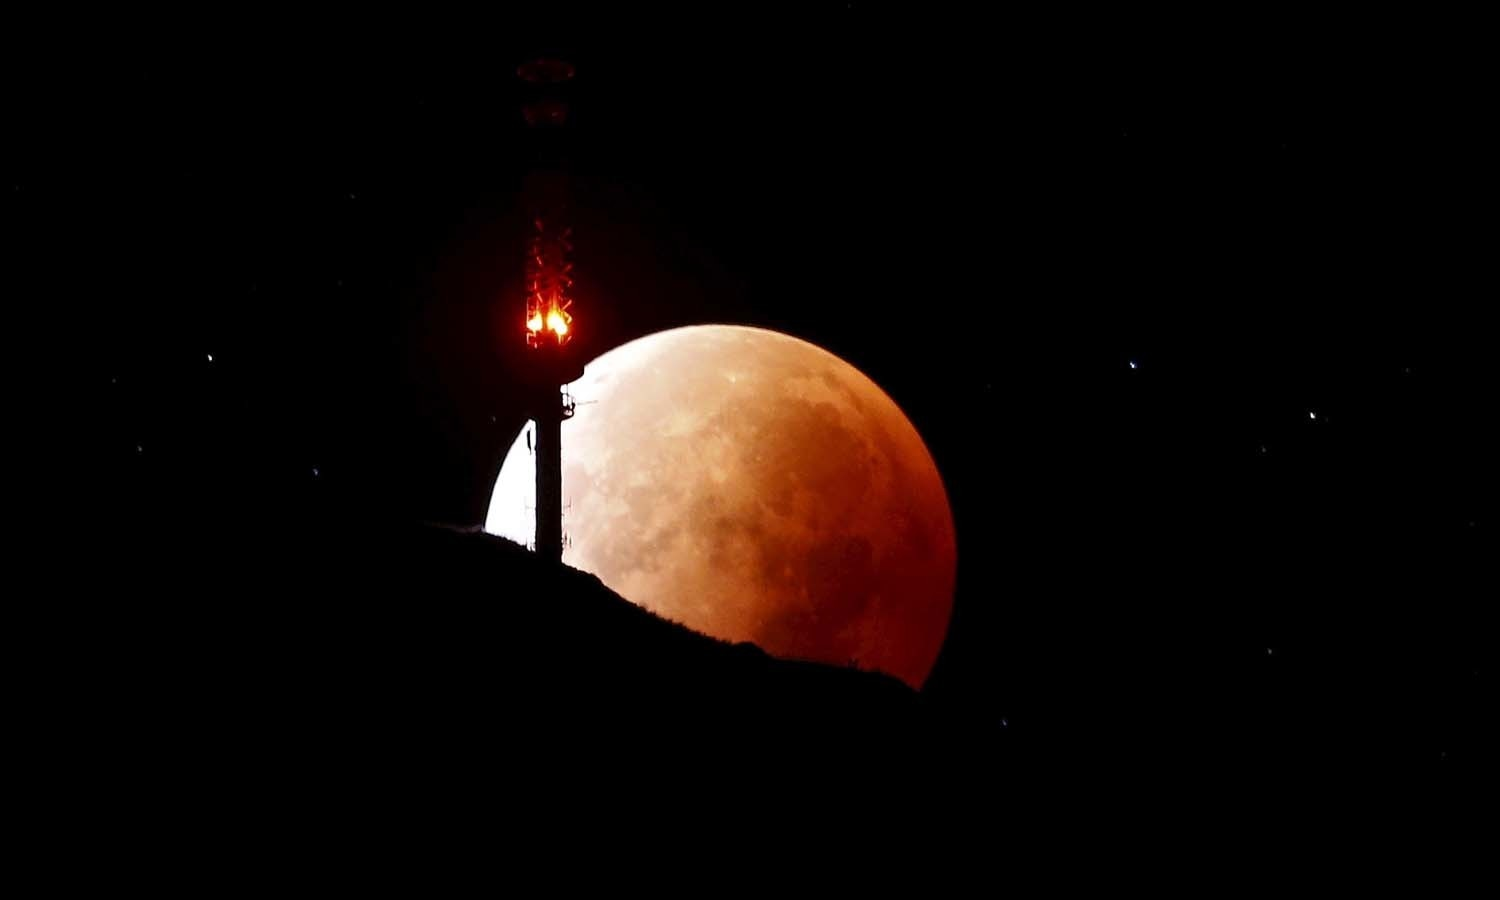 The moon, appearing in a dim red colour, is covered by the Earth's shadow during a total lunar eclipse over the peak of mount Rigi, Switzerland. — Reuters